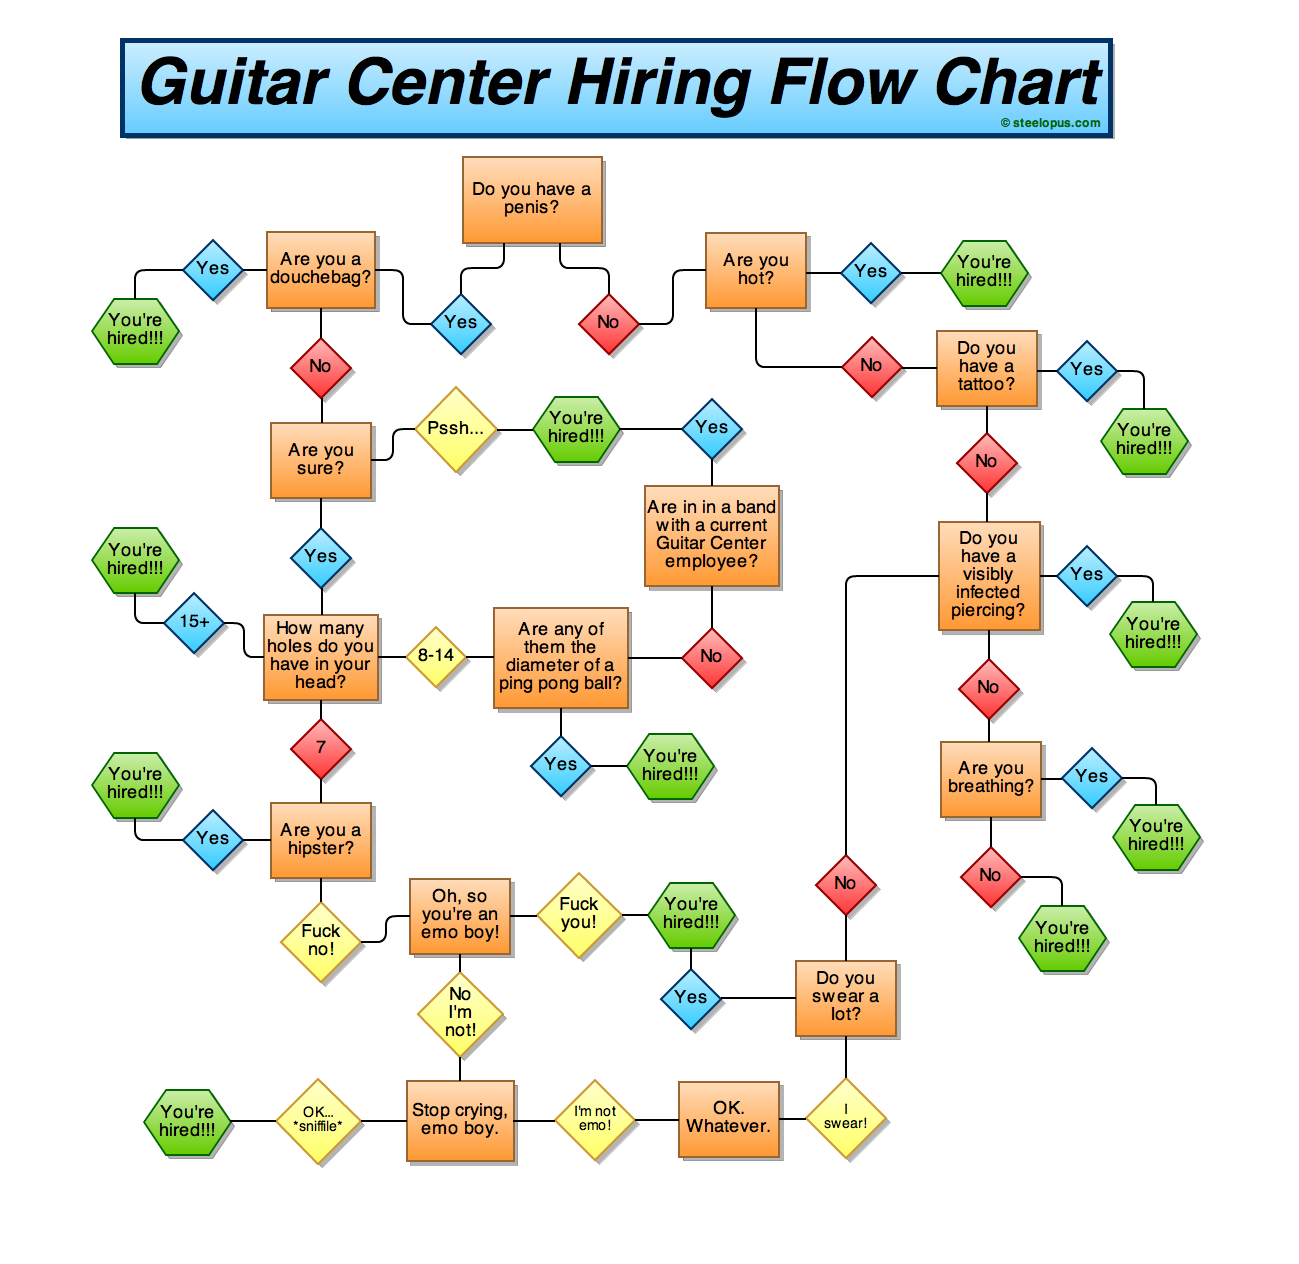 guitar center hiring flow chart click here to view the ful flickr. Black Bedroom Furniture Sets. Home Design Ideas